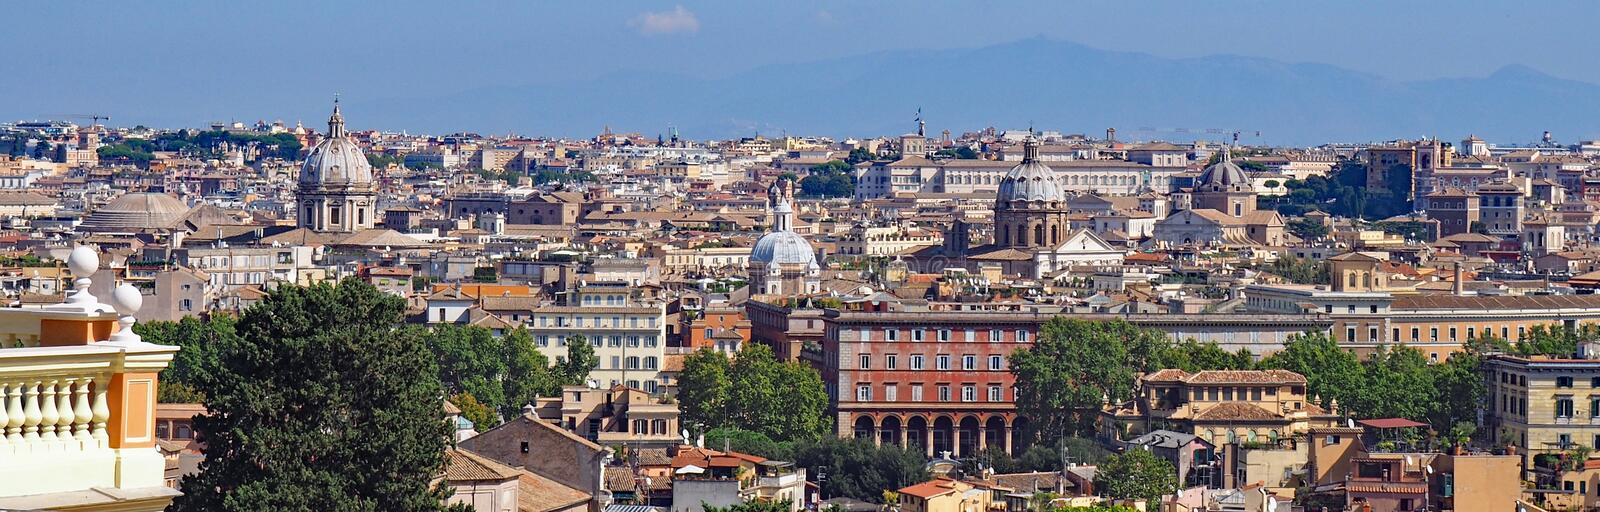 View over Rome. A view looking towards the historic center of Rome, Italy royalty free stock image